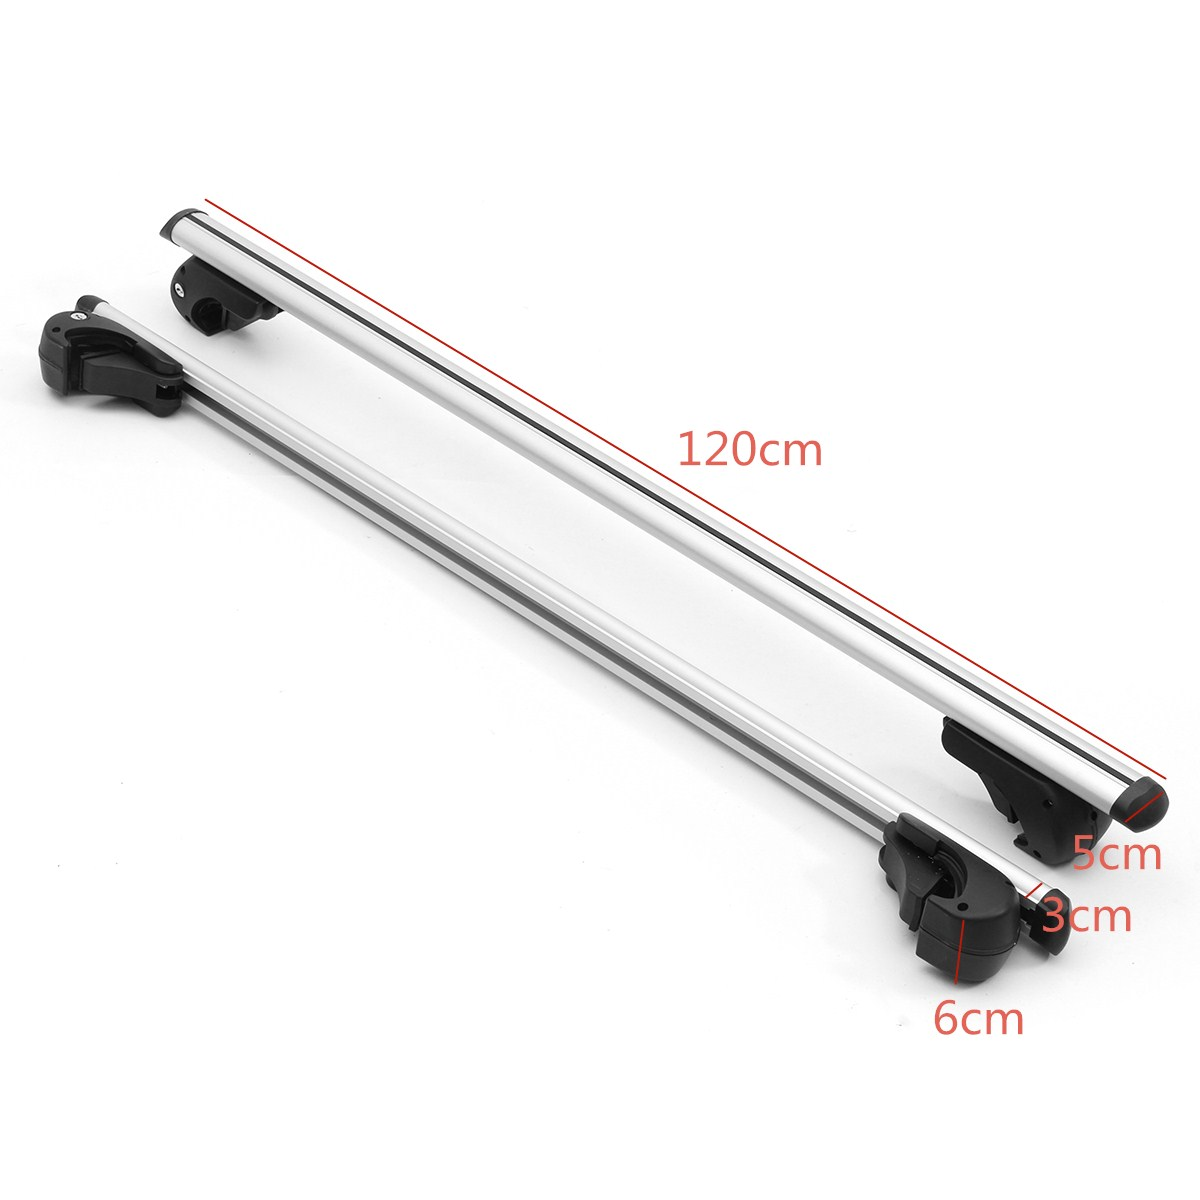 Pair Universal 48 Inch 120cm Aero Locking Car Top Cross Bar Roof Rack Cargo Luggage